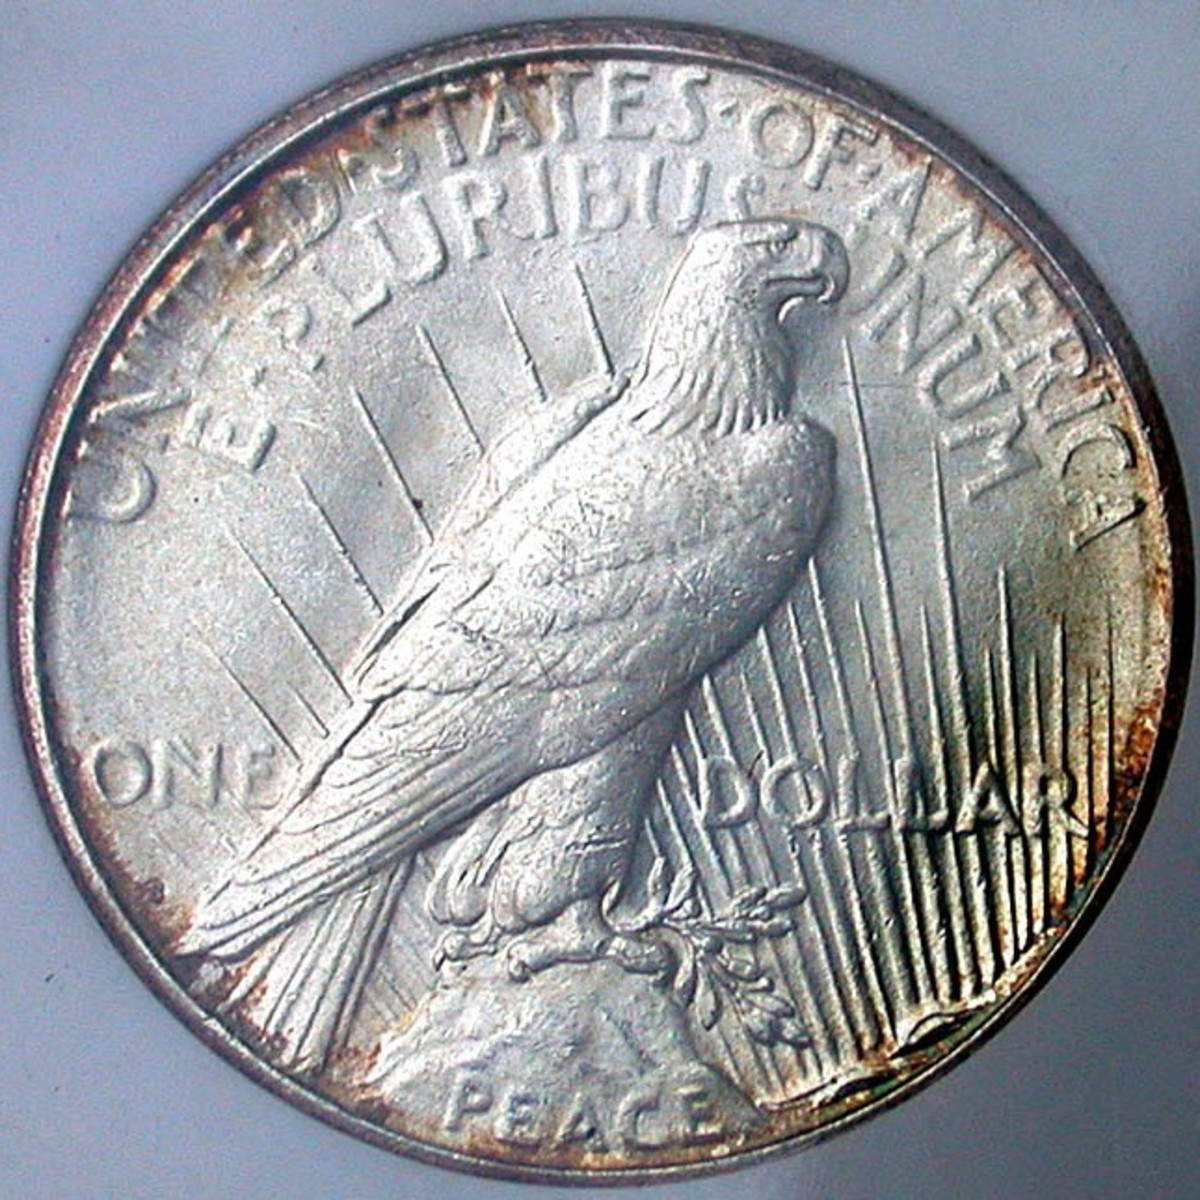 1922 S Peace Dollar Reverse Toned. Mintmark can be observed near the tail feathers. Photo Courtesy: coinpage.com